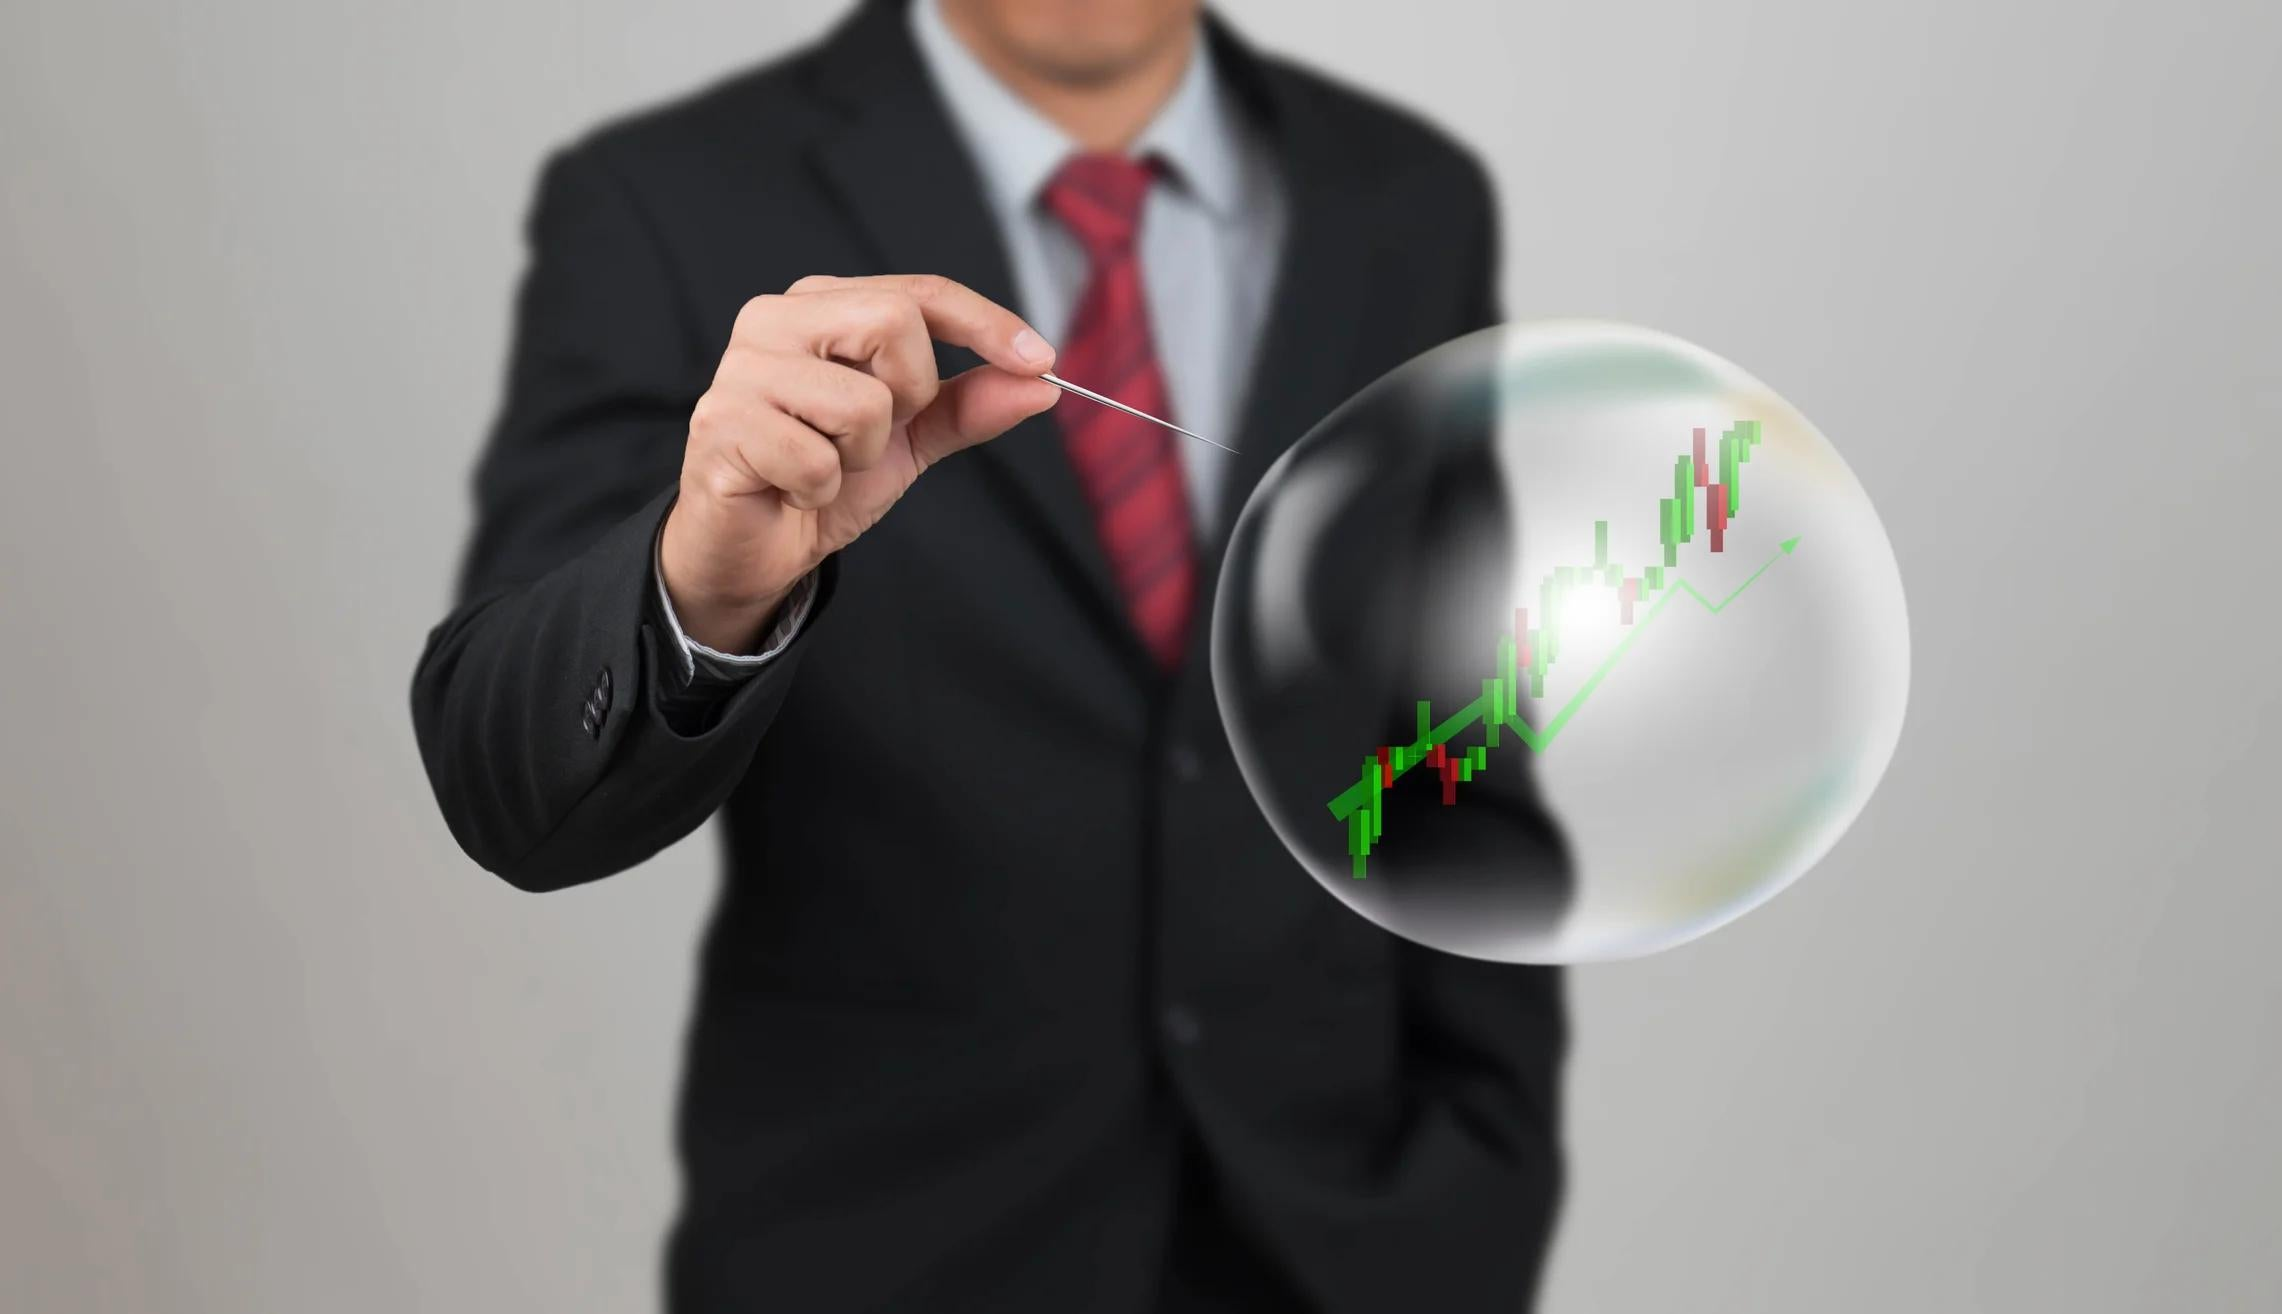 Stock Market Bubble? Here's How to End Up a Winner